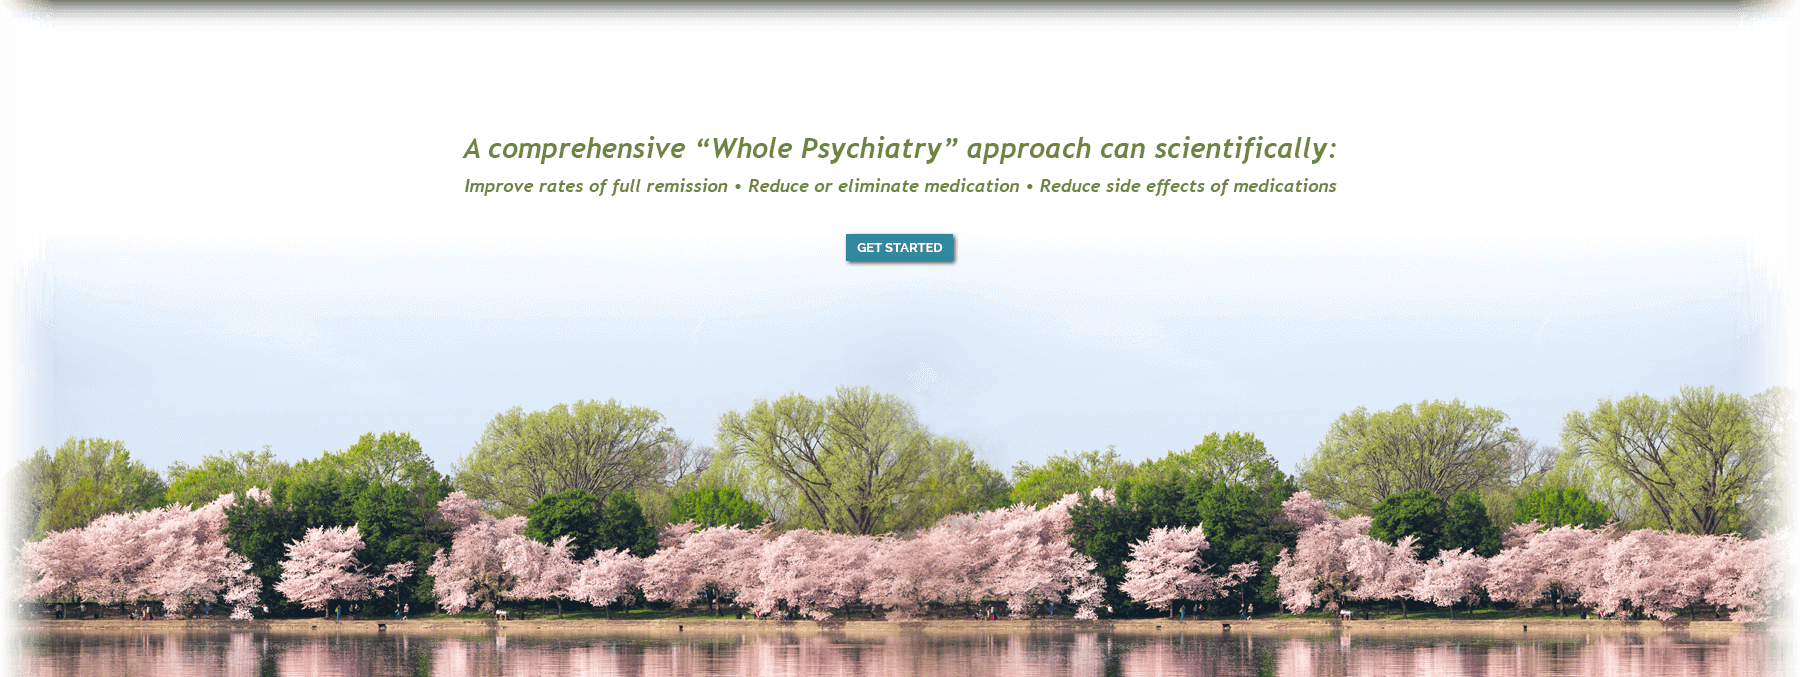 https://wholepsychiatry.com/wp-content/uploads/2019/04/hero-2.png